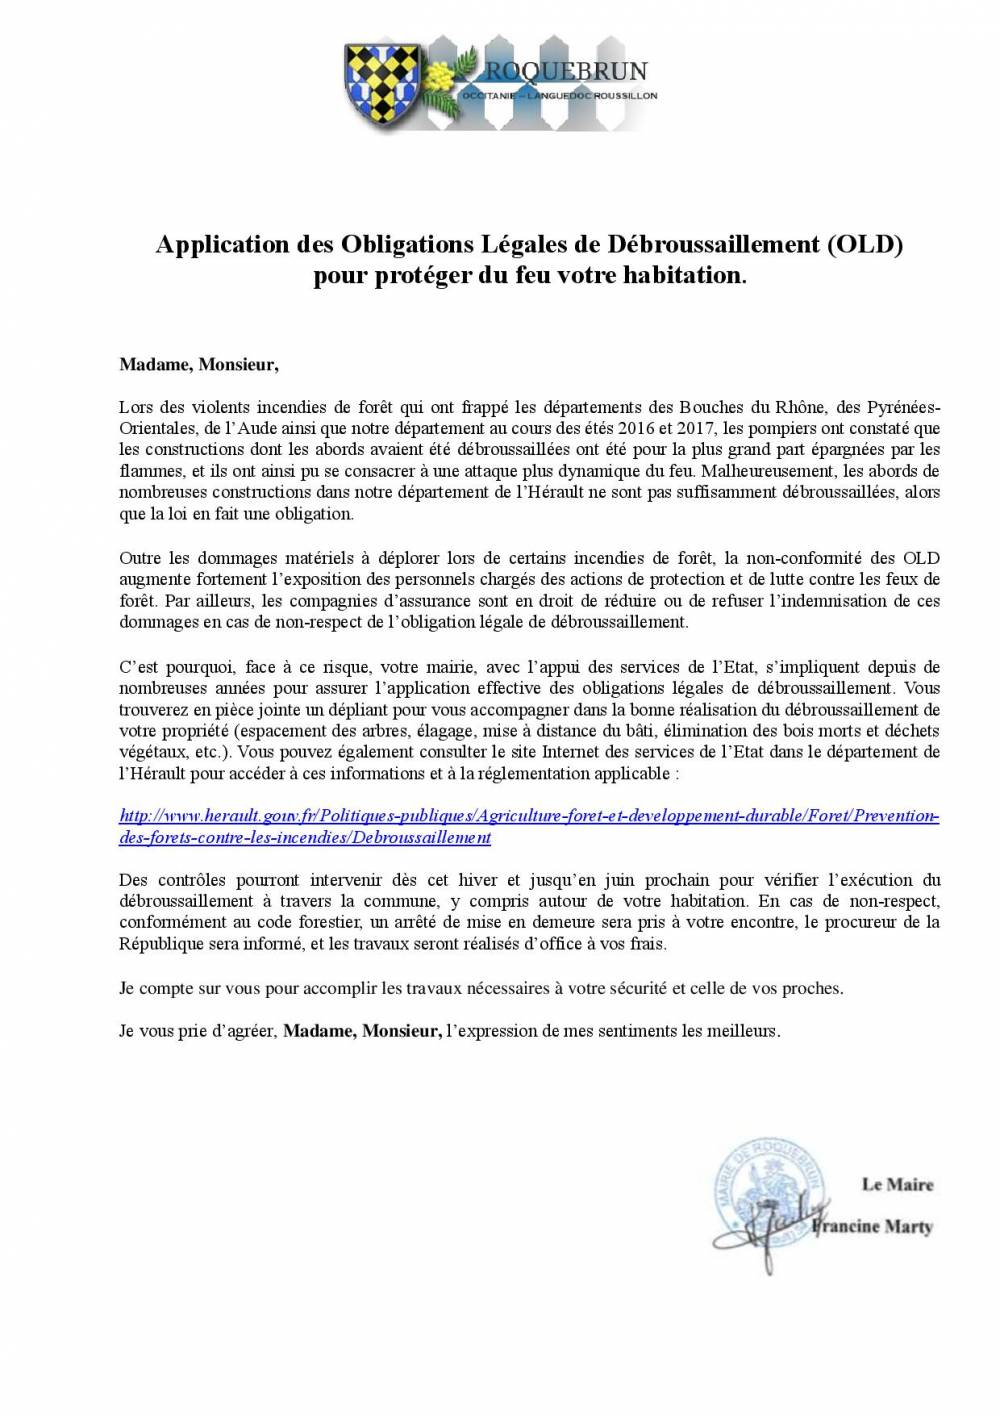 Application des Obligations Légales de Débroussaillement page 001